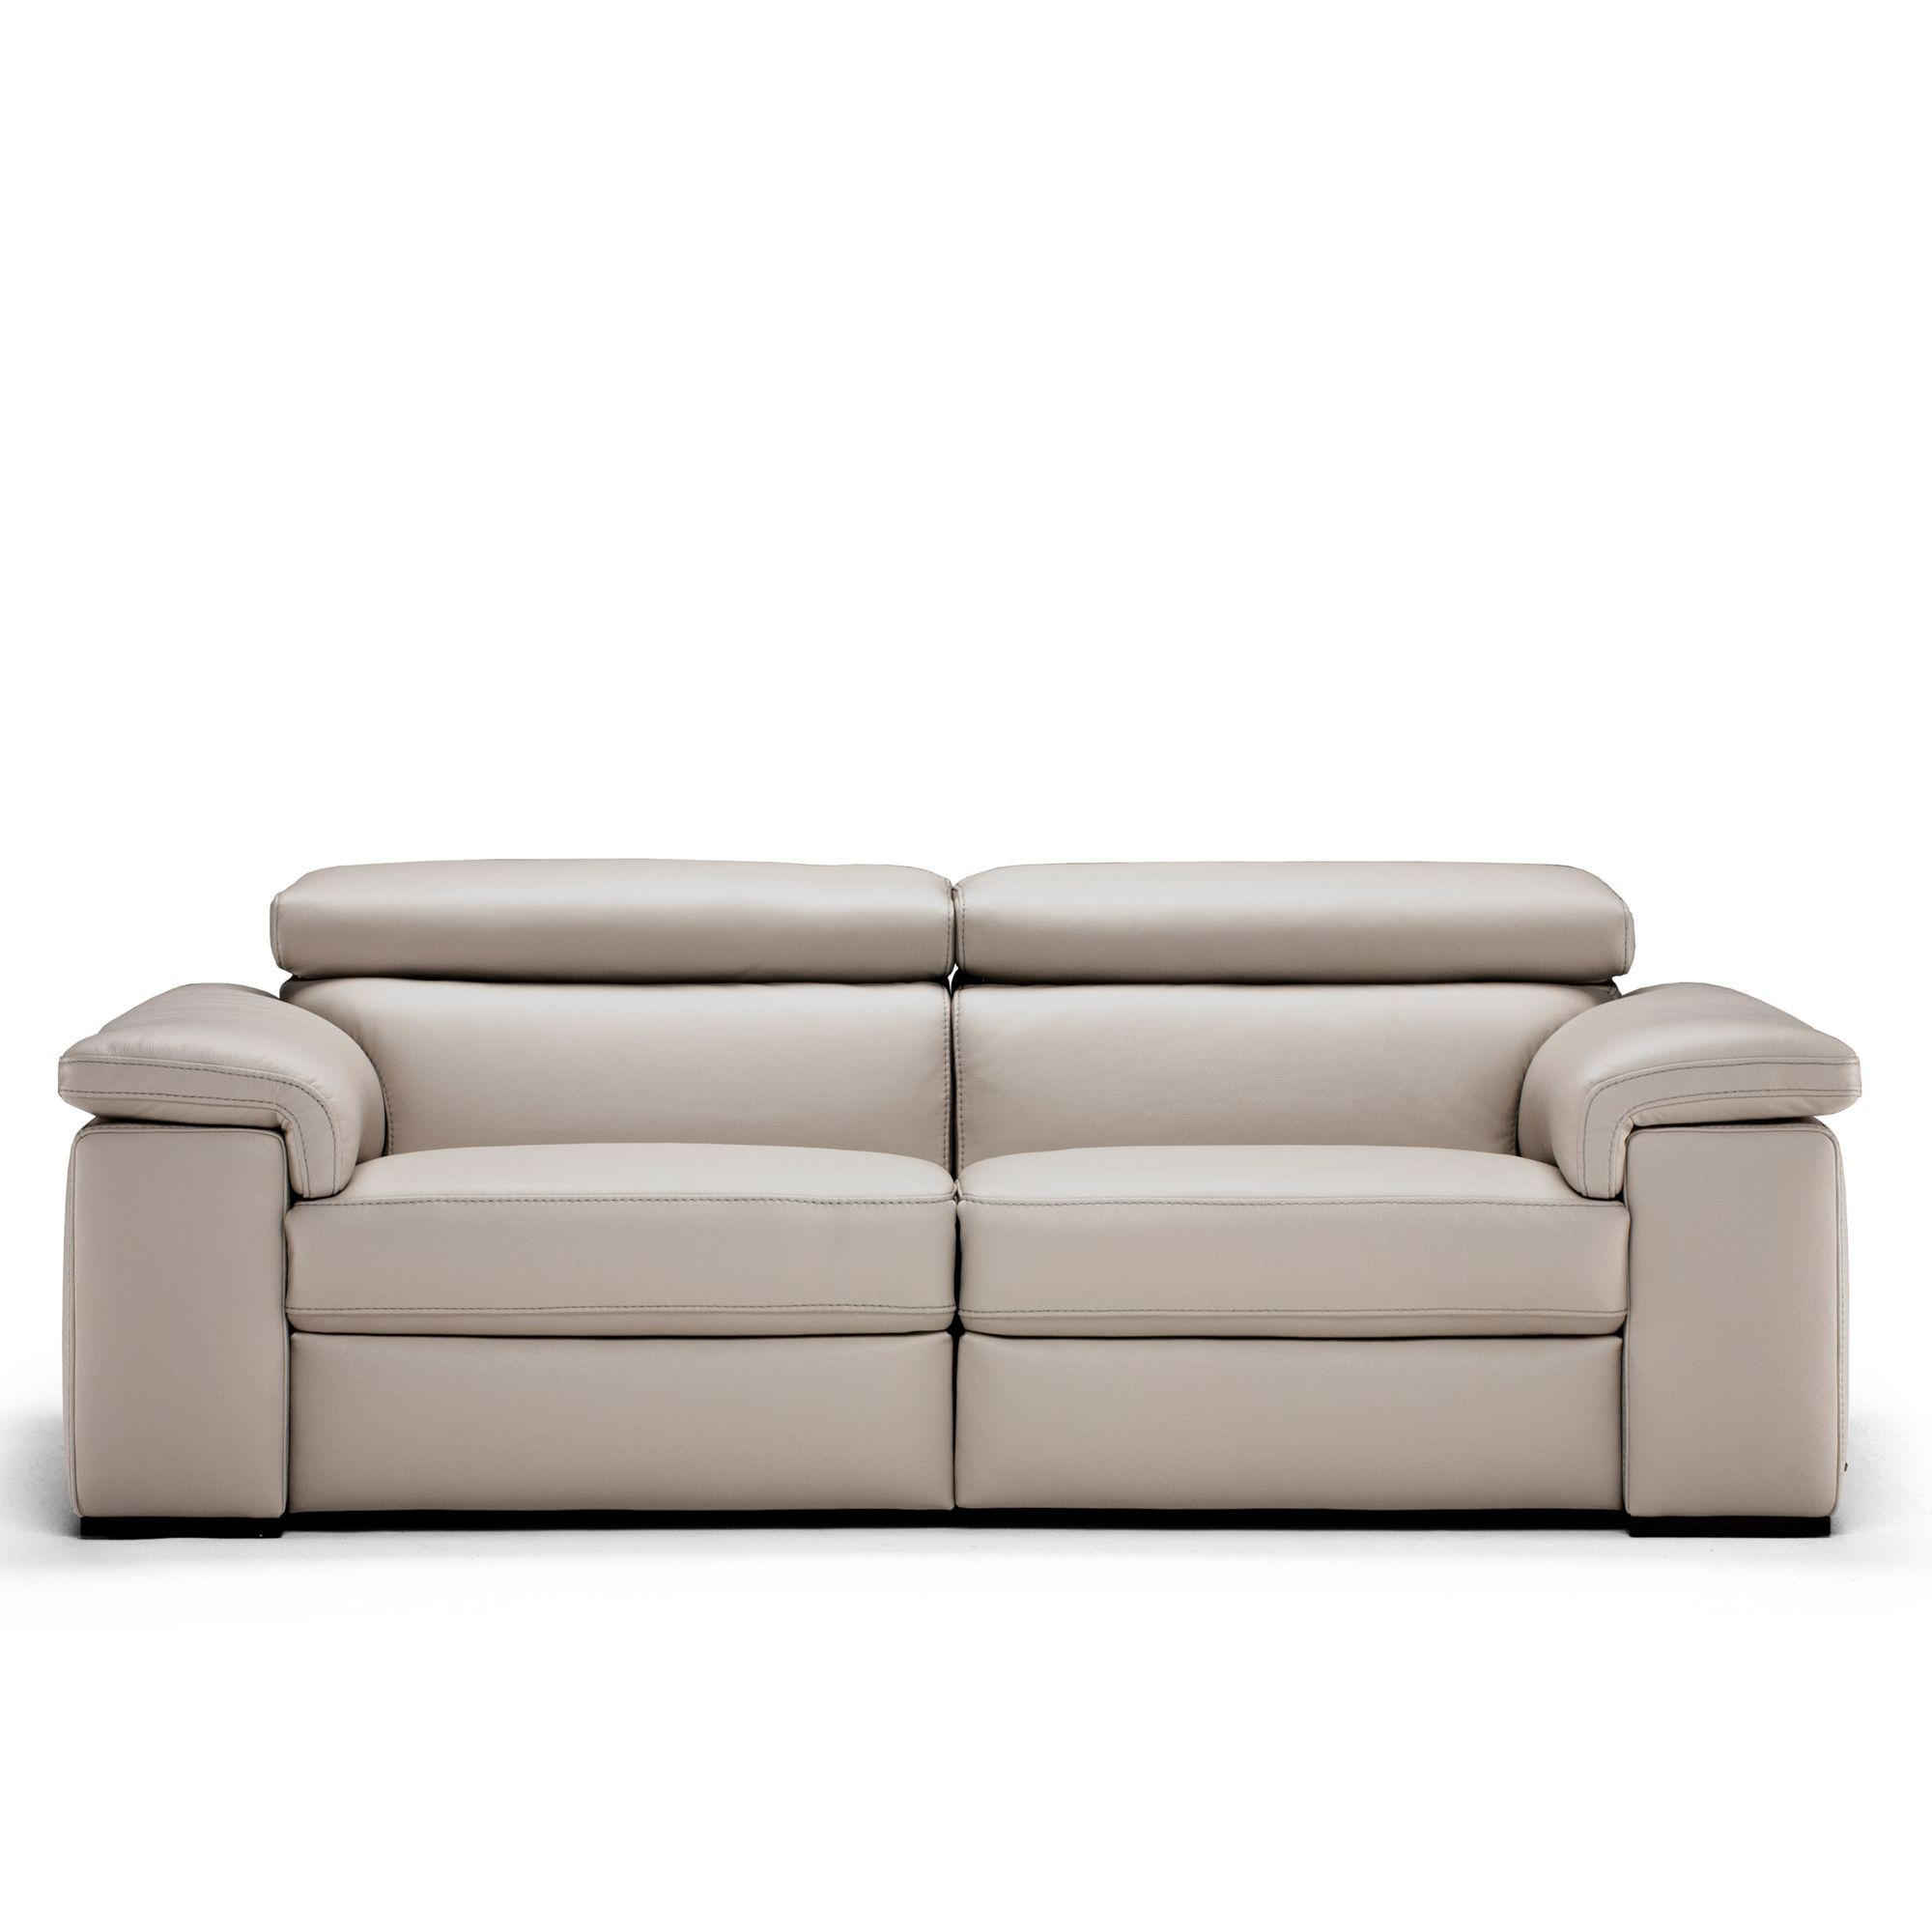 Get the best deals on natuzzi leather sofas when you shop the largest online selection at ebay.com. Natuzzi Editions Sardinia Large Sofa - Cookes Furniture ...